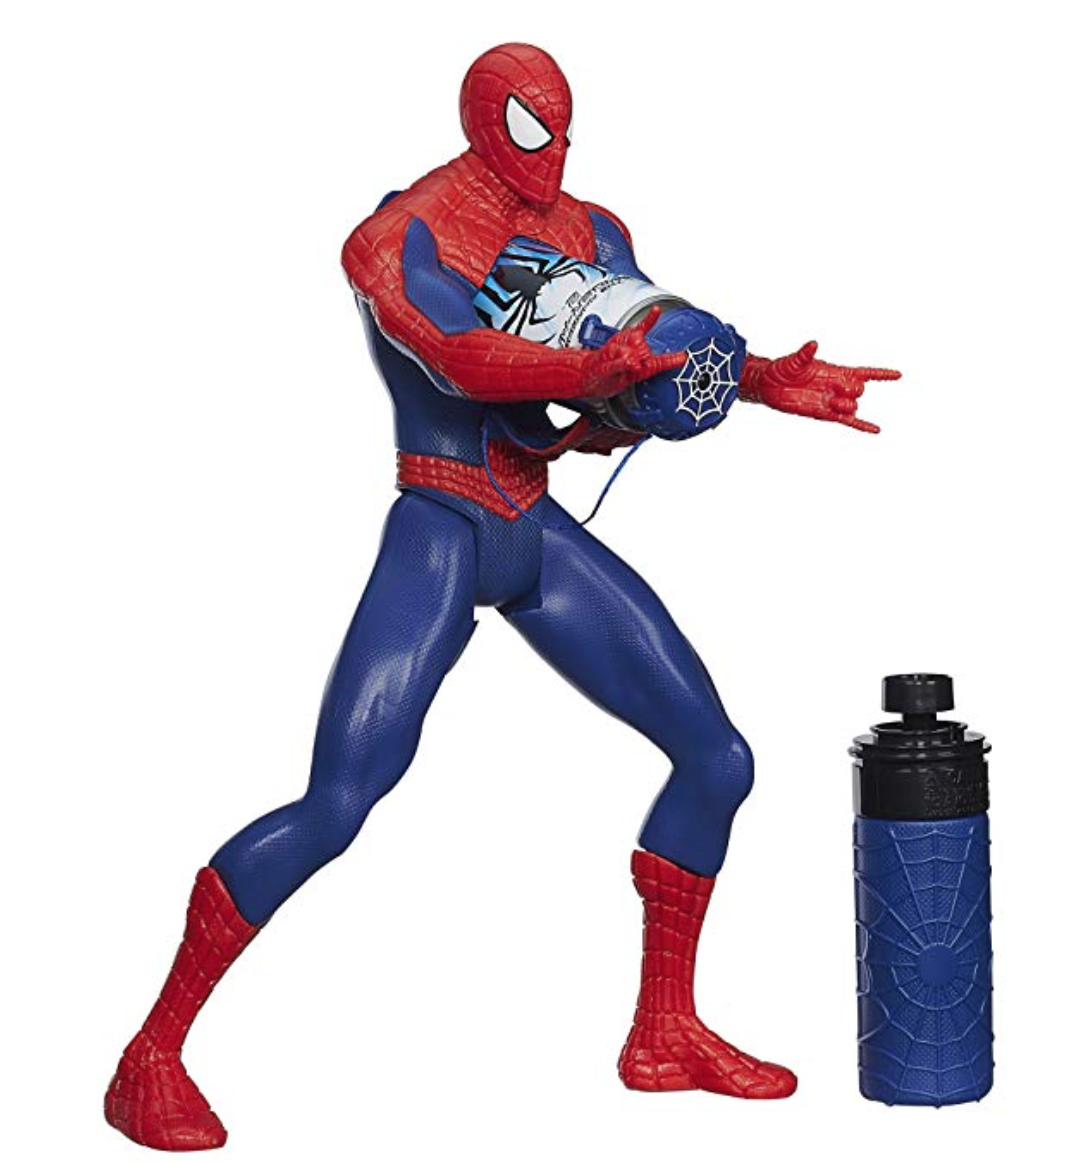 Marvel The Amazing Spider-Man 2 Web-Slinging 2-in-1 Figure